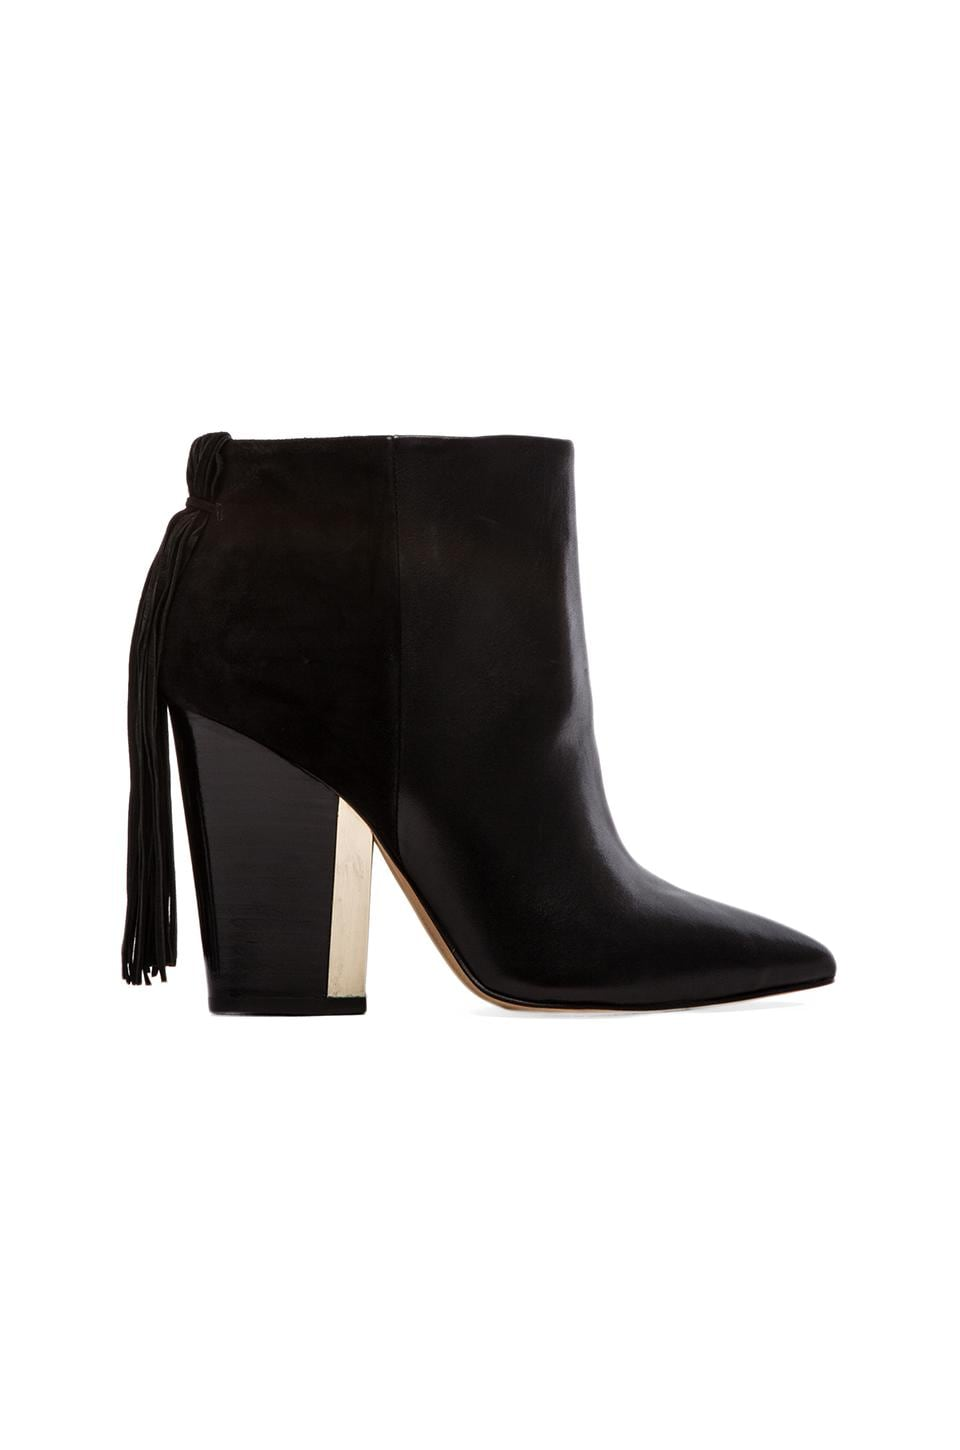 Sam Edelman Mariel Boot in Black